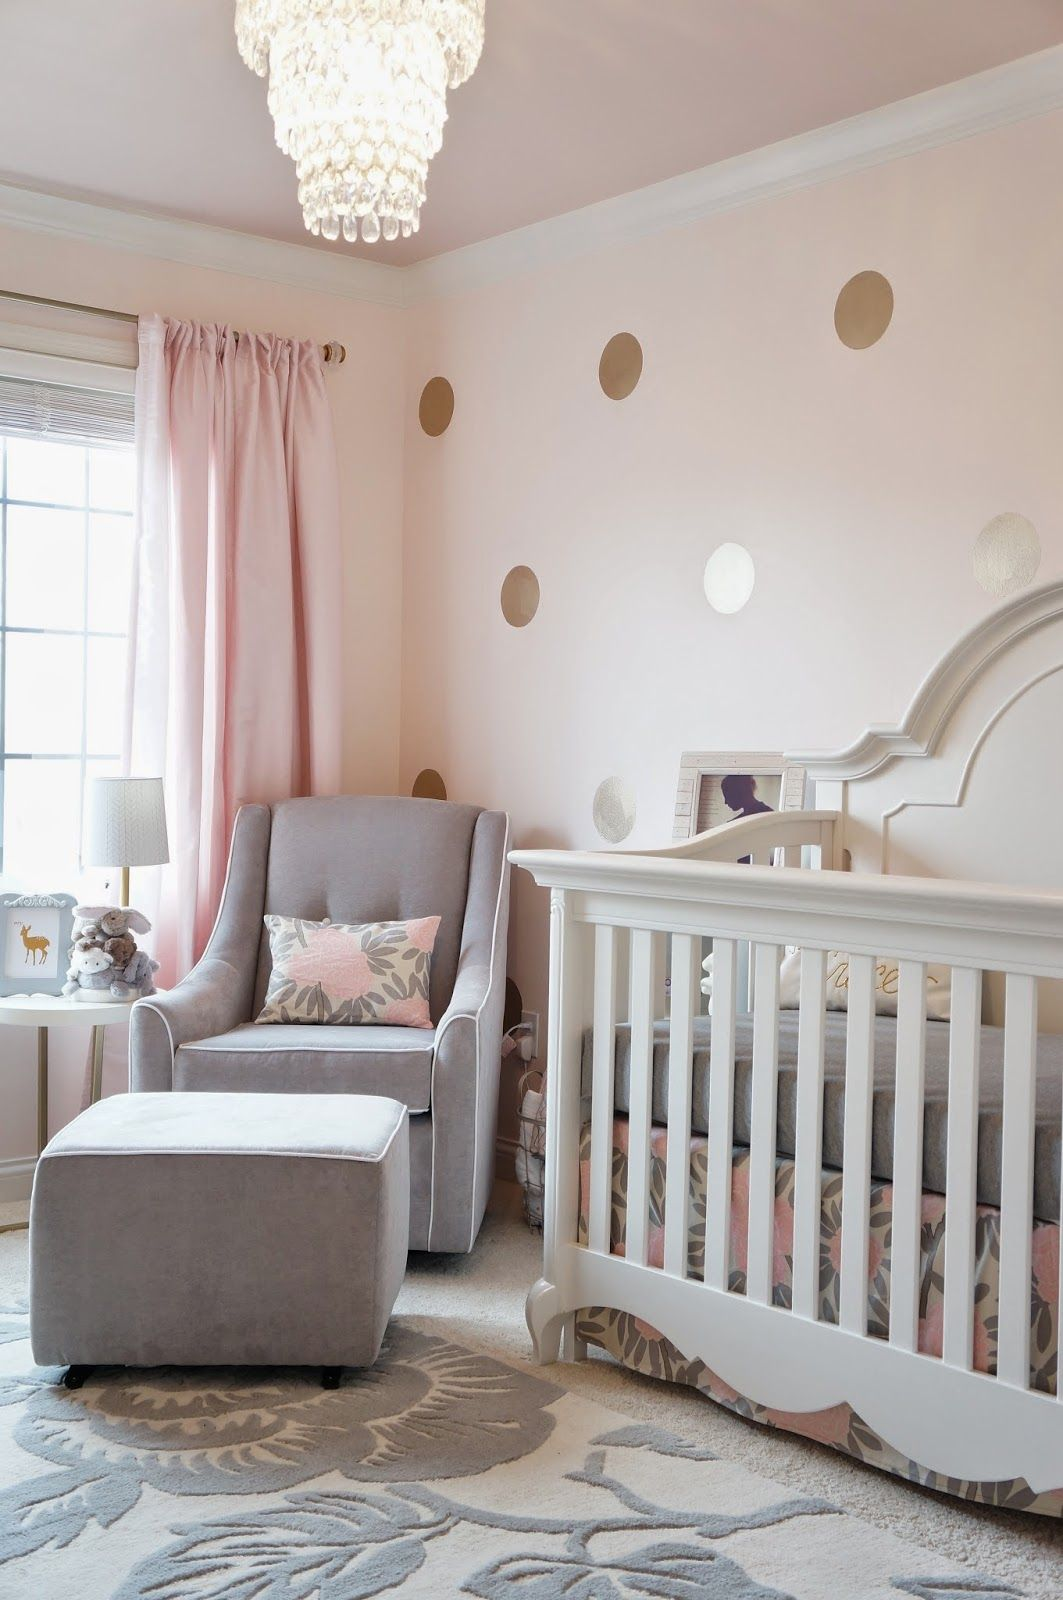 39 id es inspirations pour la d coration de la chambre b b photos pink grey house for Decoration chambre bebe hibou